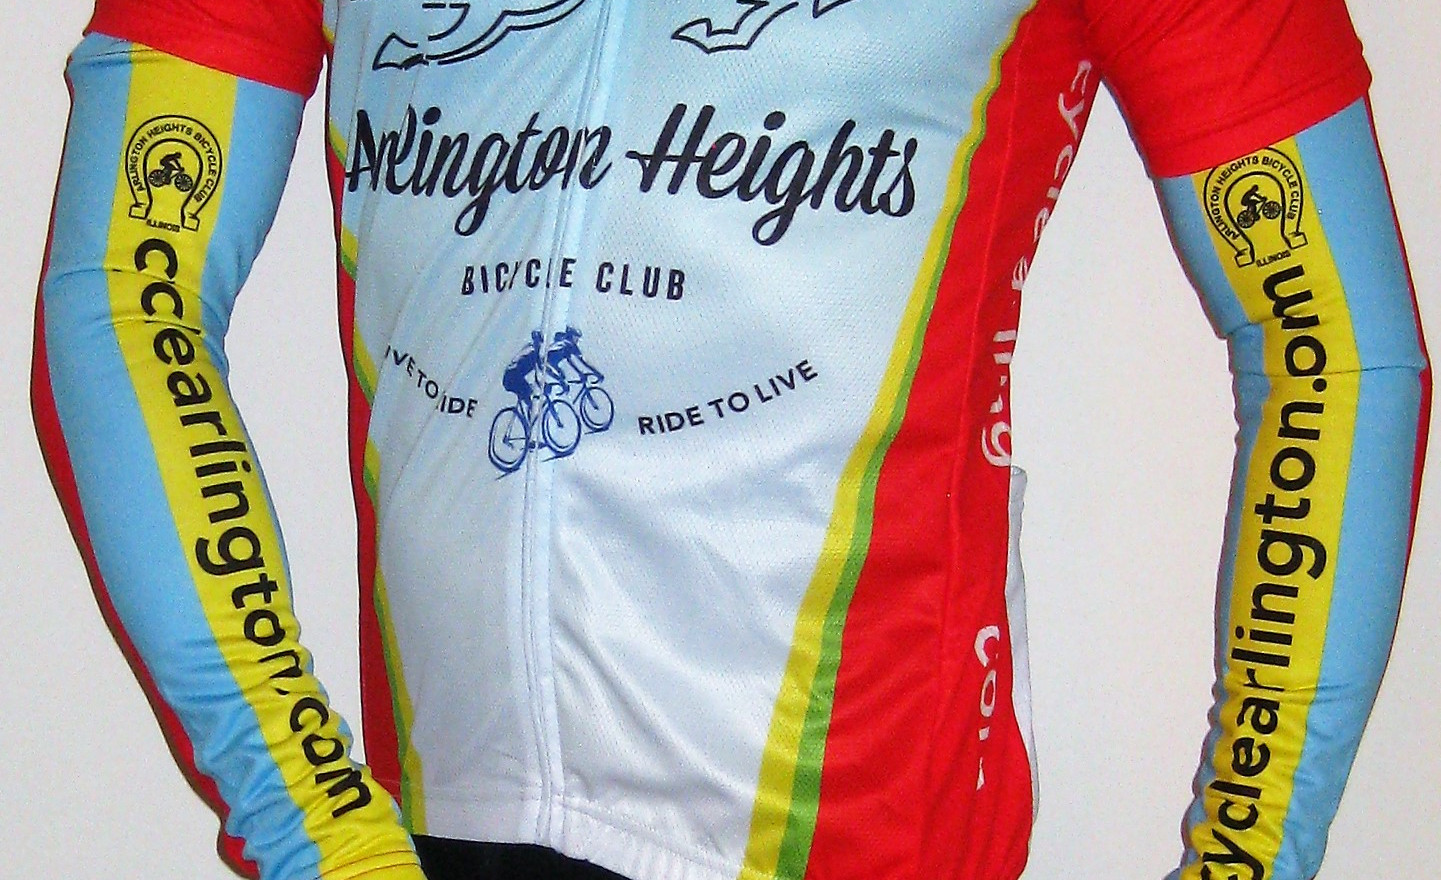 Bicycle Clubs Custom cycling jerseys | Bicycle Club Custom cycling Shorts, Custom cycling bibs | Bicycle Clubs custom cycling apparel